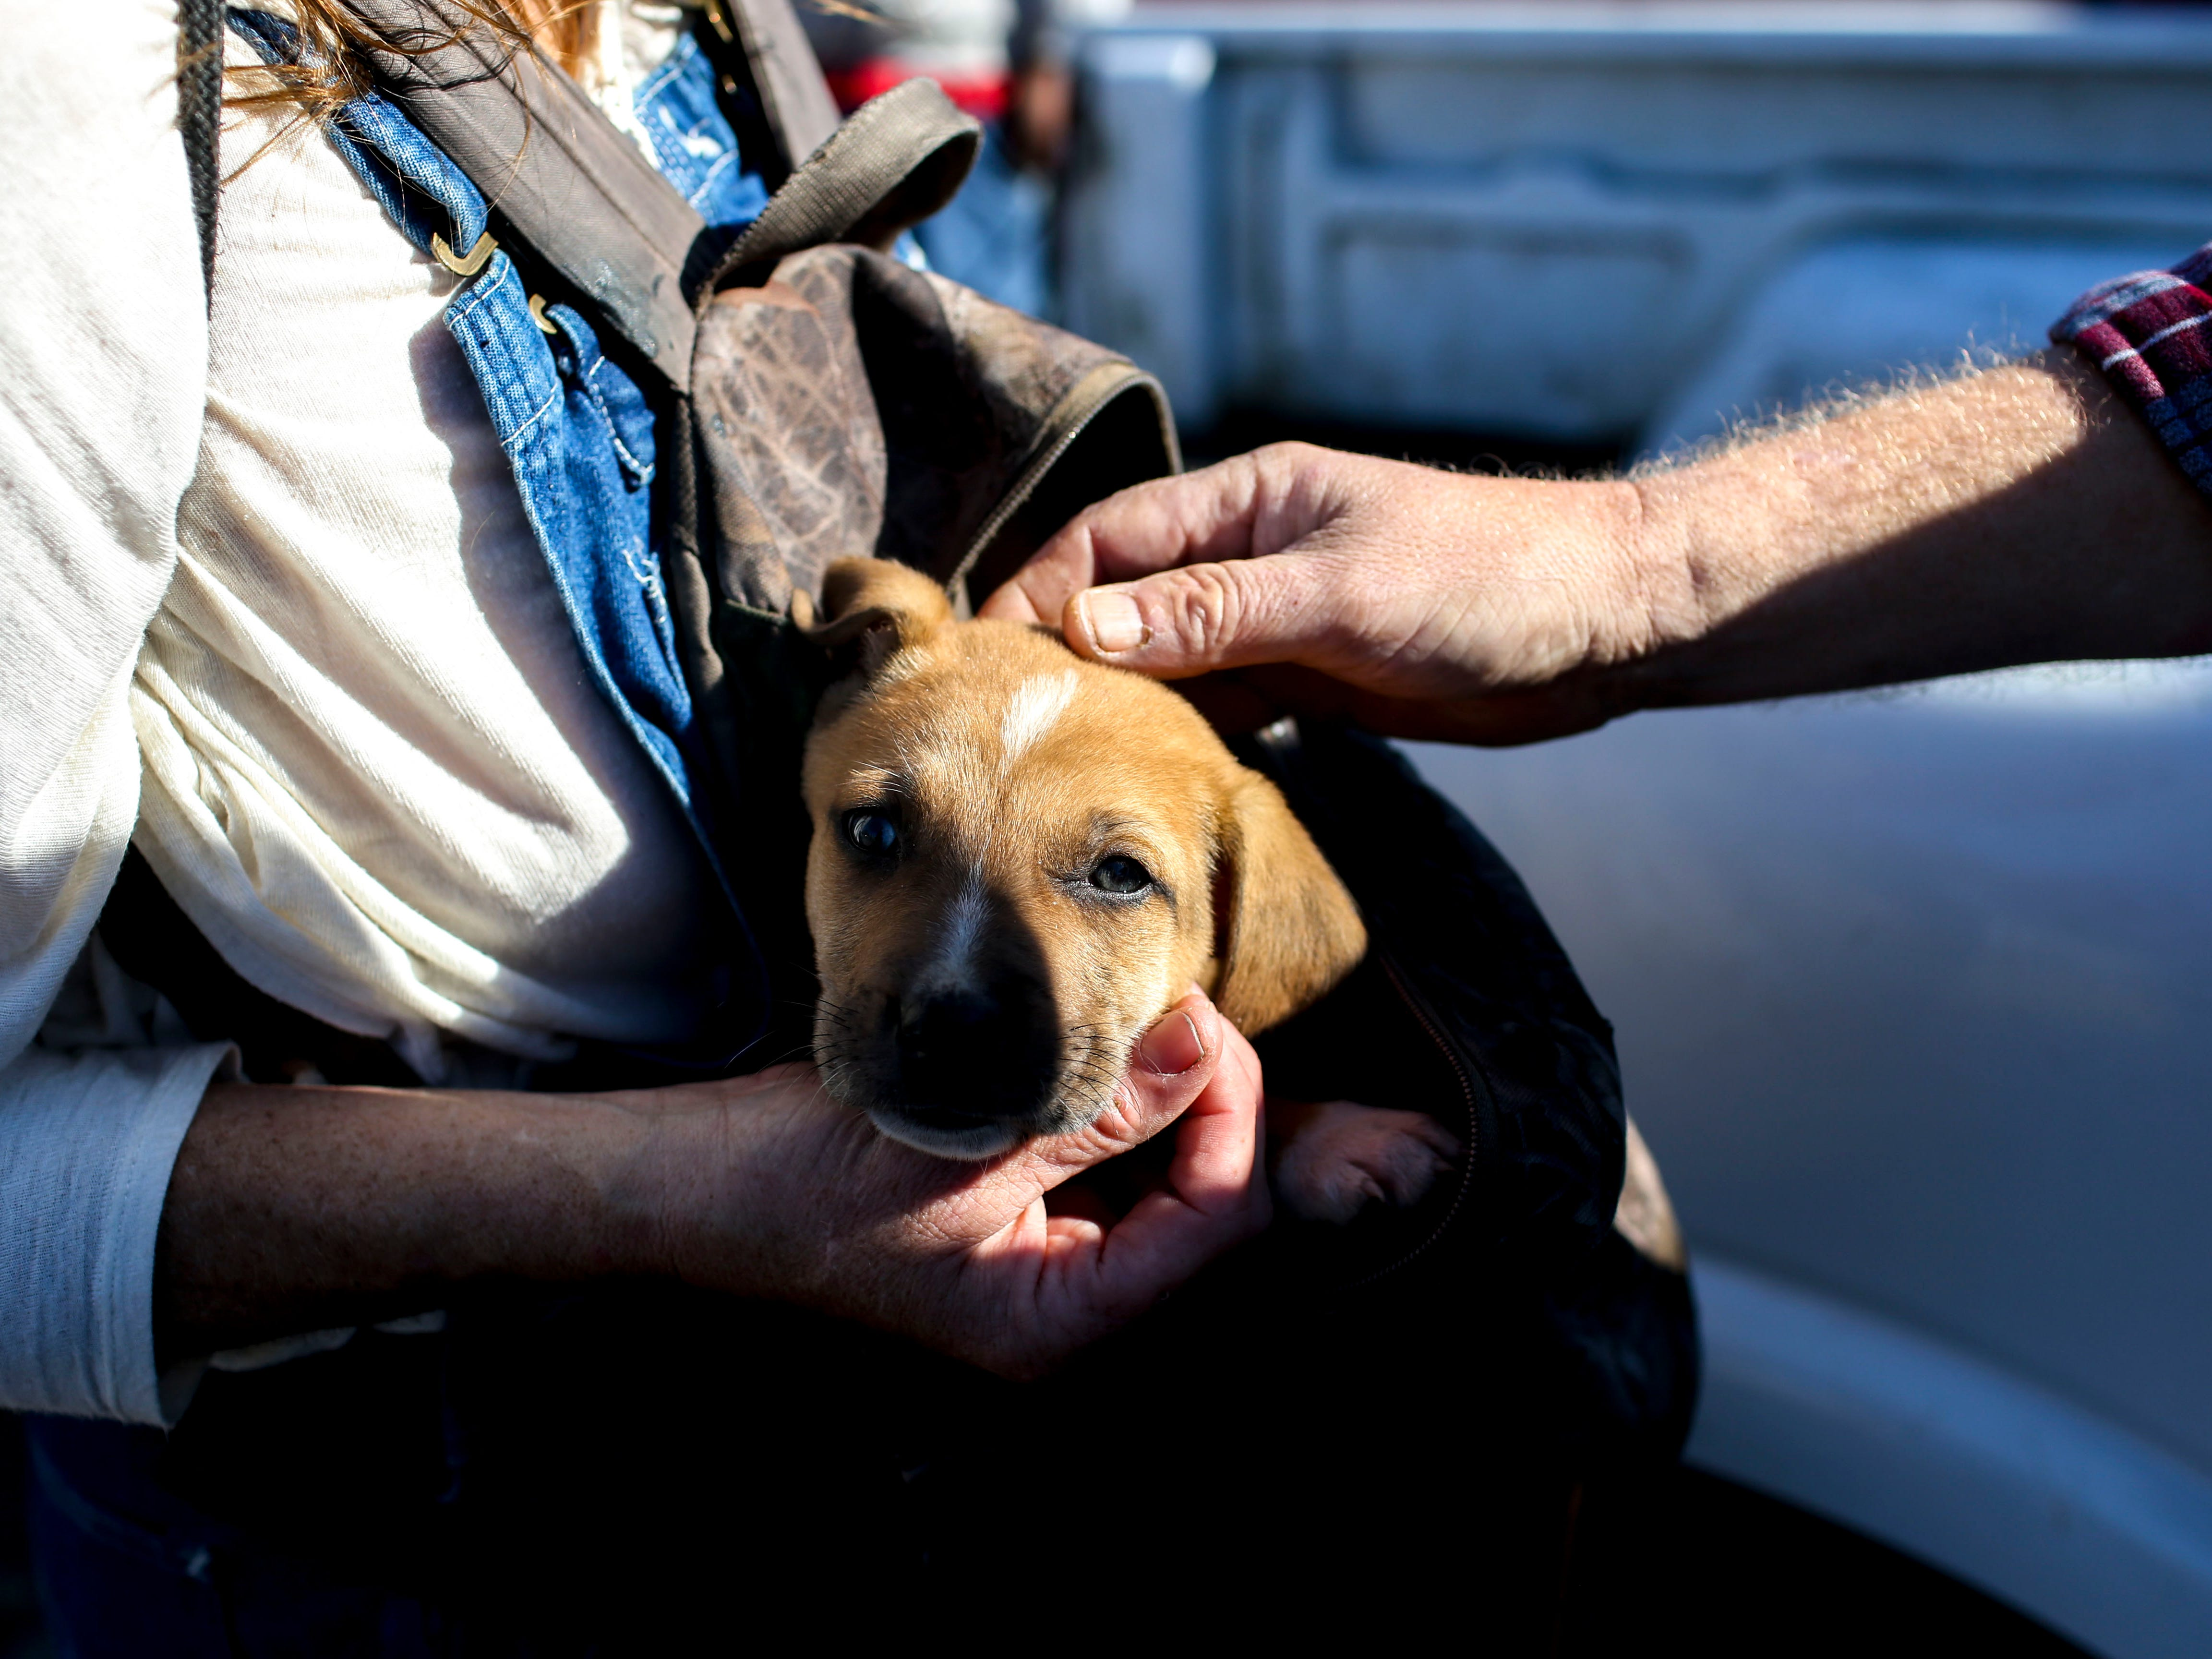 A visitor to Safe Harbor carries a puppy given to her by her boyfriend in a backpack at the annual Thanksgiving meal put on by Safe Harbor Day Mission in Jackson, Tenn., on Wednesday, Nov. 21, 2018.